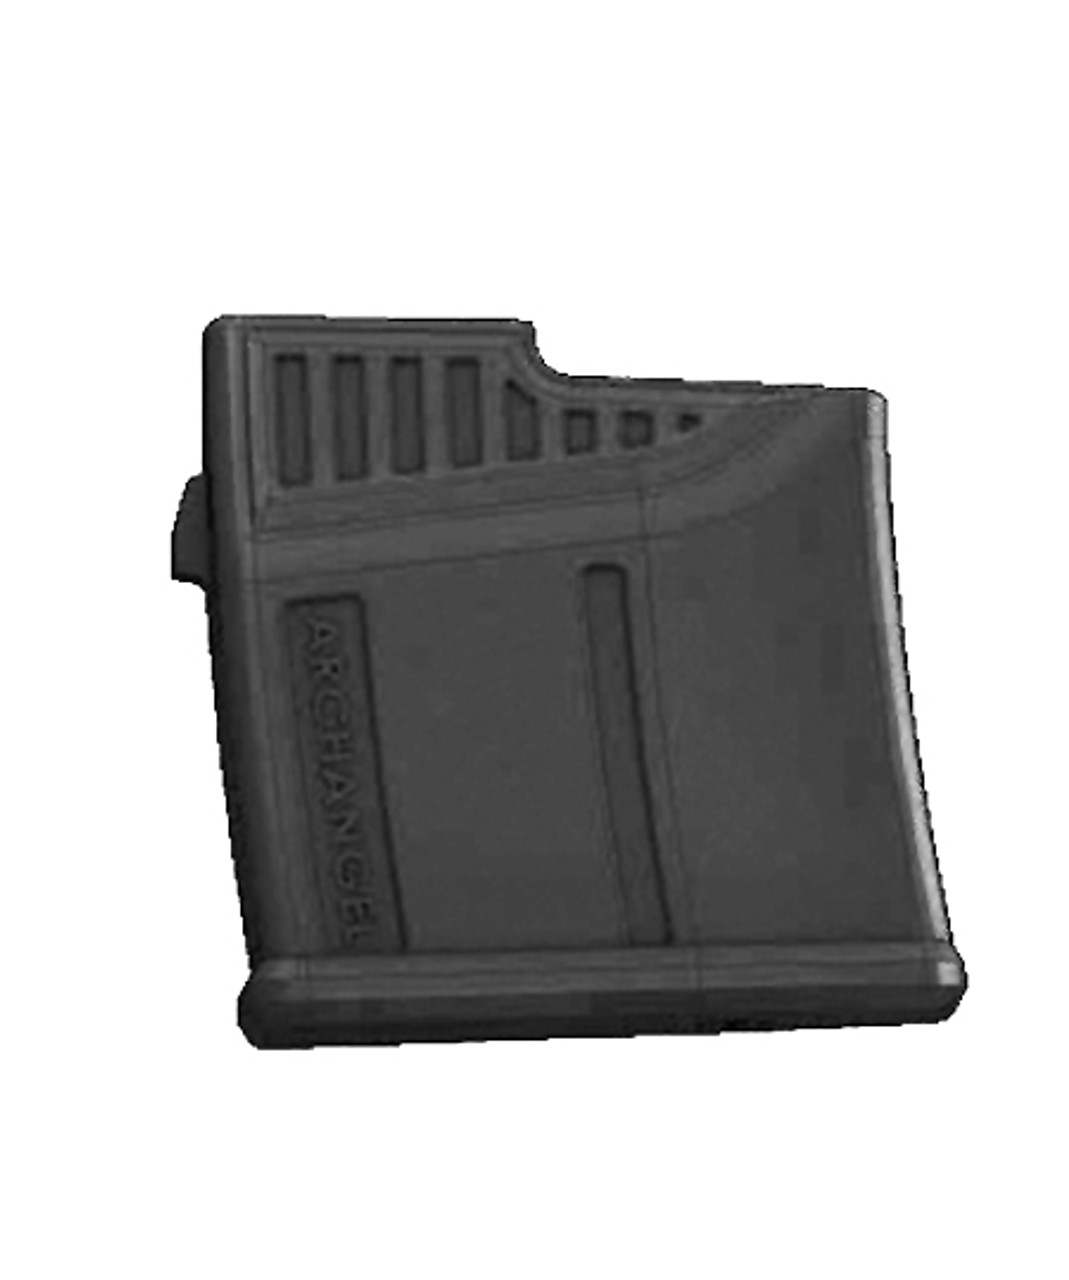 Archangel® 8mm TYPE B Magazine for AA98 and AAT3 (10) Rd with (5) Rd Limiter - Black Polymer